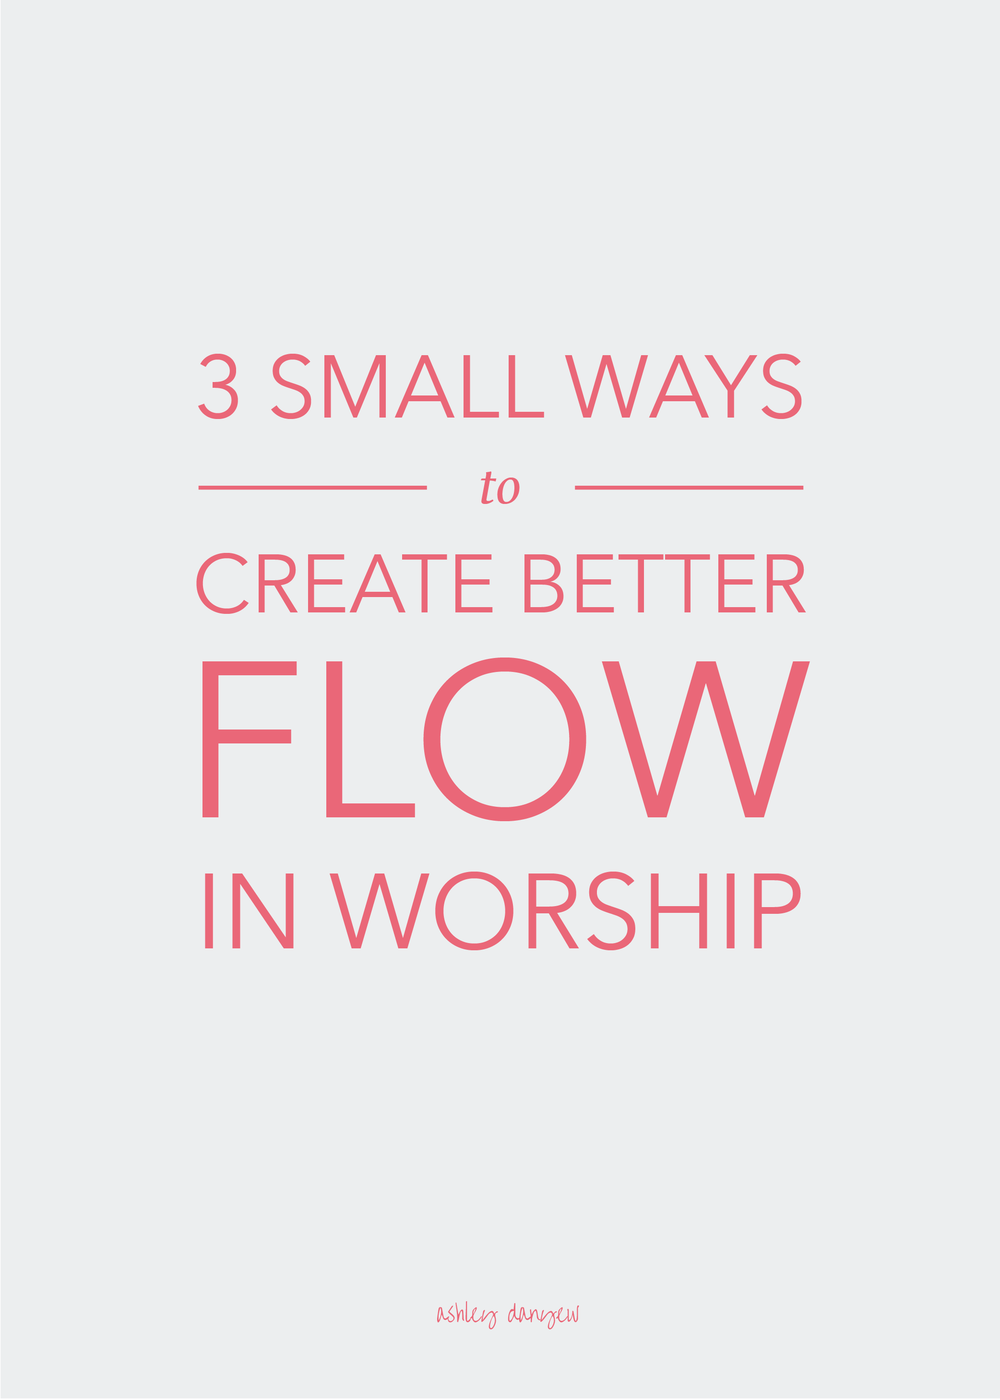 Copy of 3 Small Ways to Create Better Flow in Worship